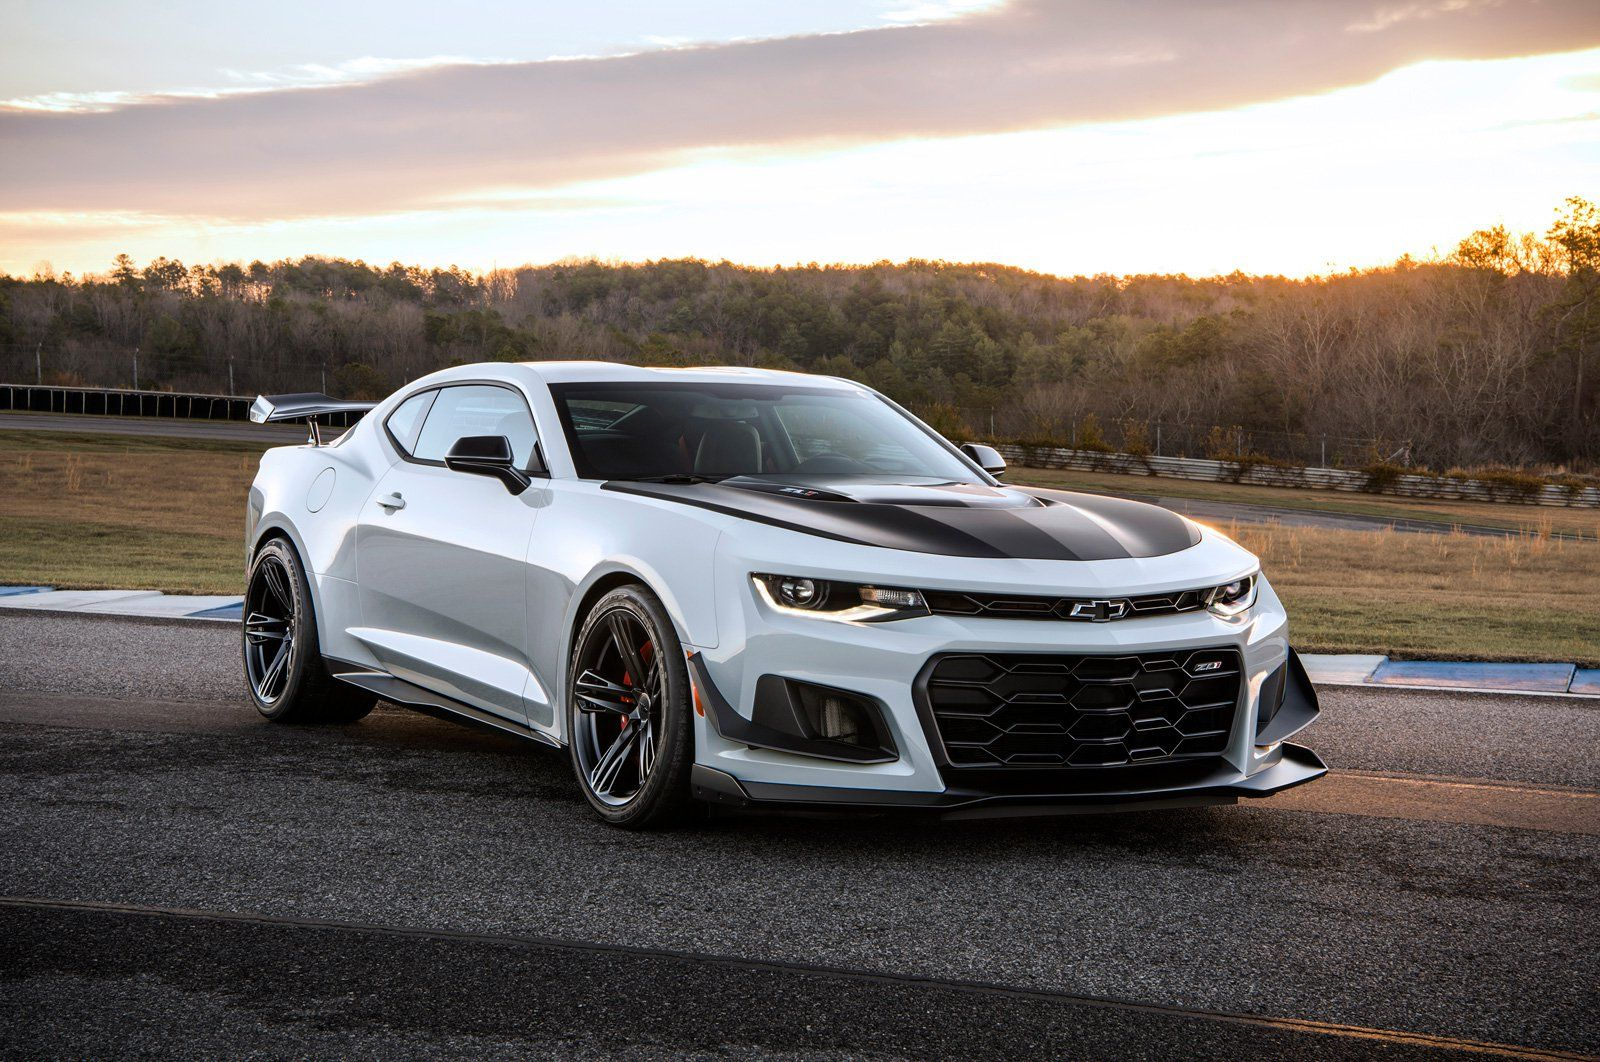 2017 camaro zl1 hennessey exorcist hiconsumption classic and sports cars pinterest camaro zl1 sports cars and dodge